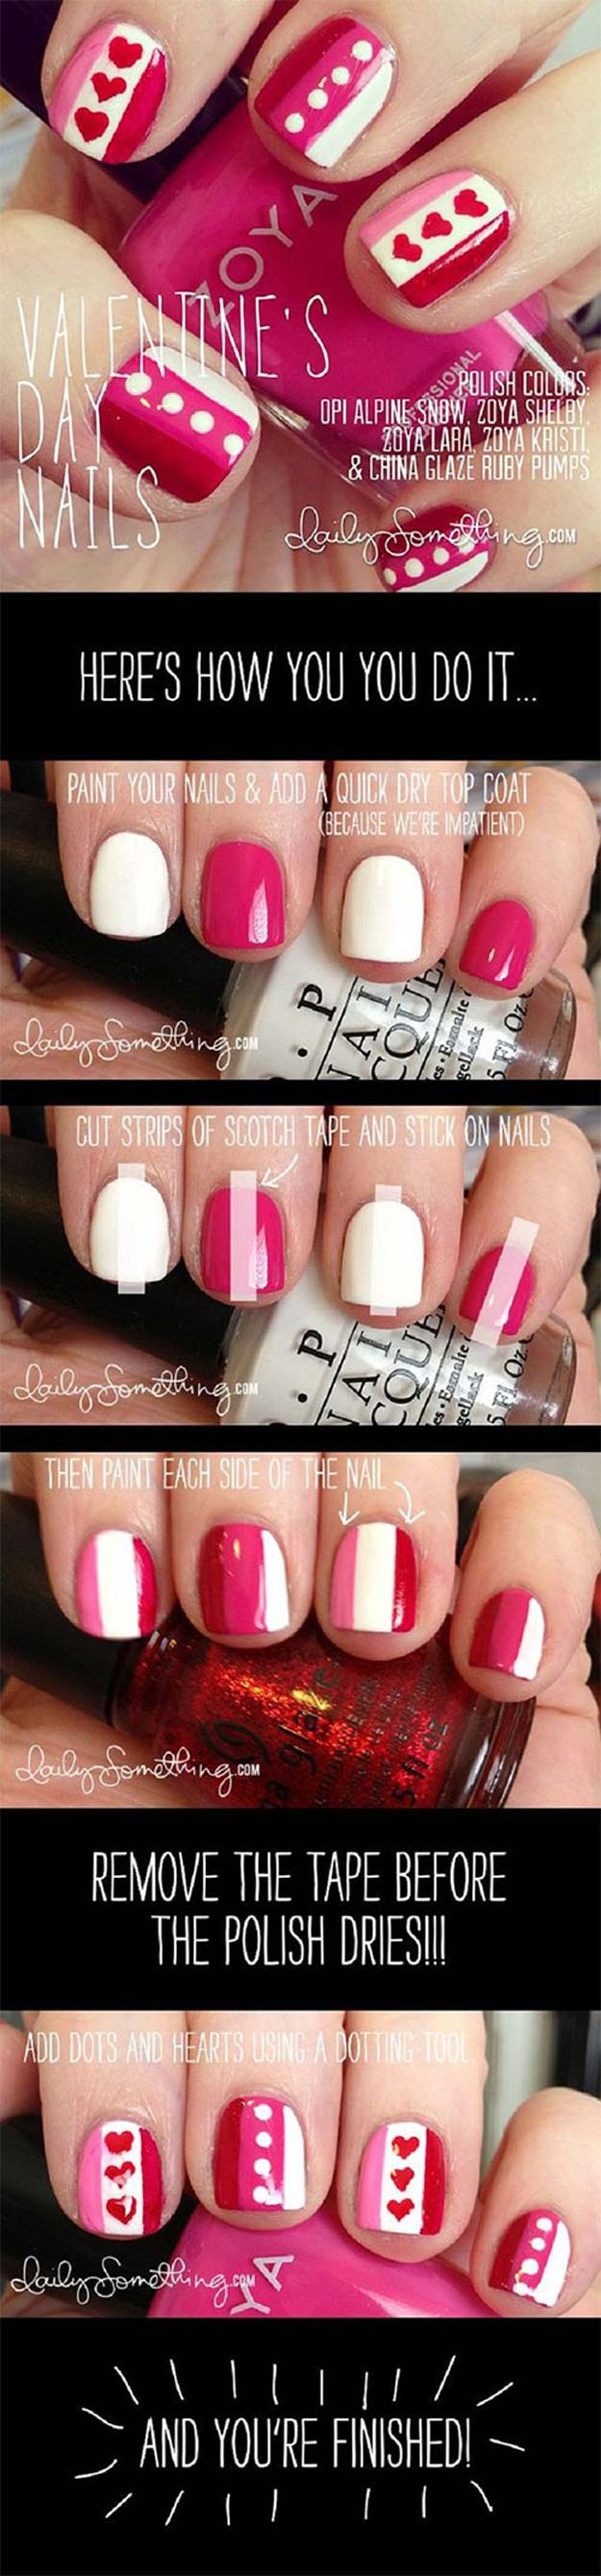 35 fabulous valentine nail art ideas valentine nail art ideas valentines day nail art cute and cool looks for valentines solutioingenieria Choice Image